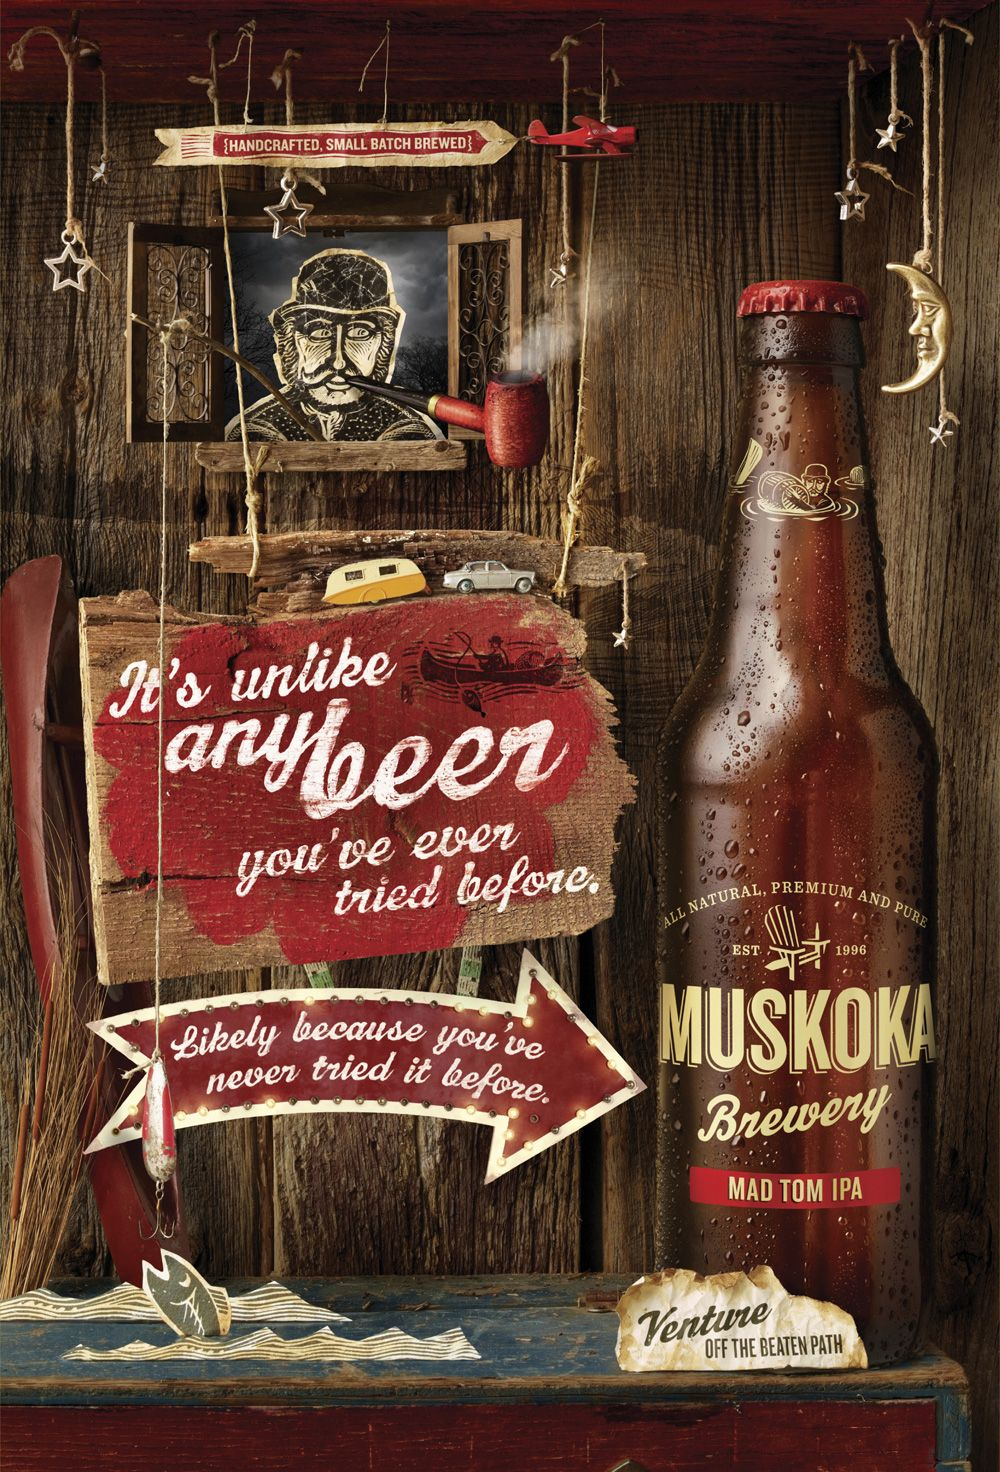 Http Www Ibelieveinadv Com Wp Content Uploads 2011 08 Muskoka Beer Mad Tom Ibelieveinadv Jpg Beer Design Beer Ad Beer Poster